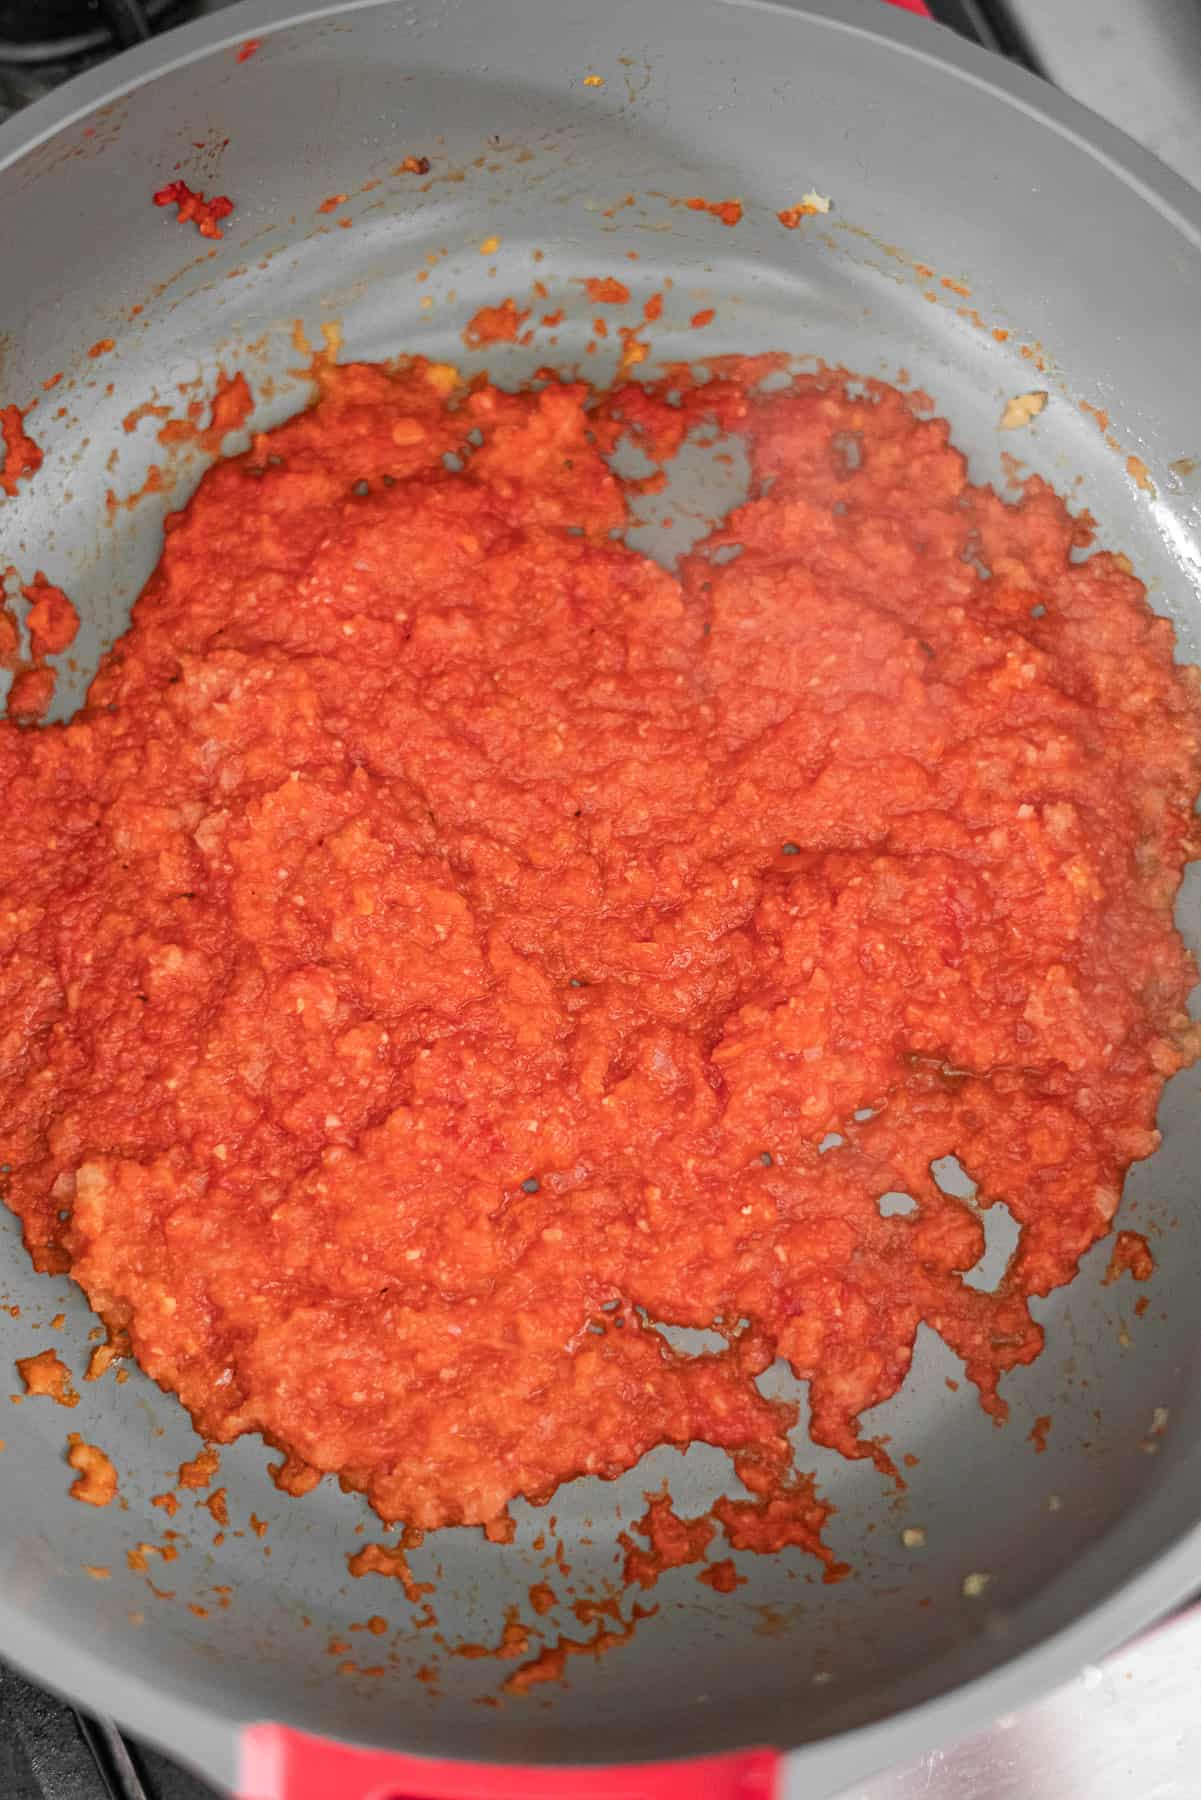 the onions, ginger garlic paste, and tomato paste, and masalas mixed together in a pan